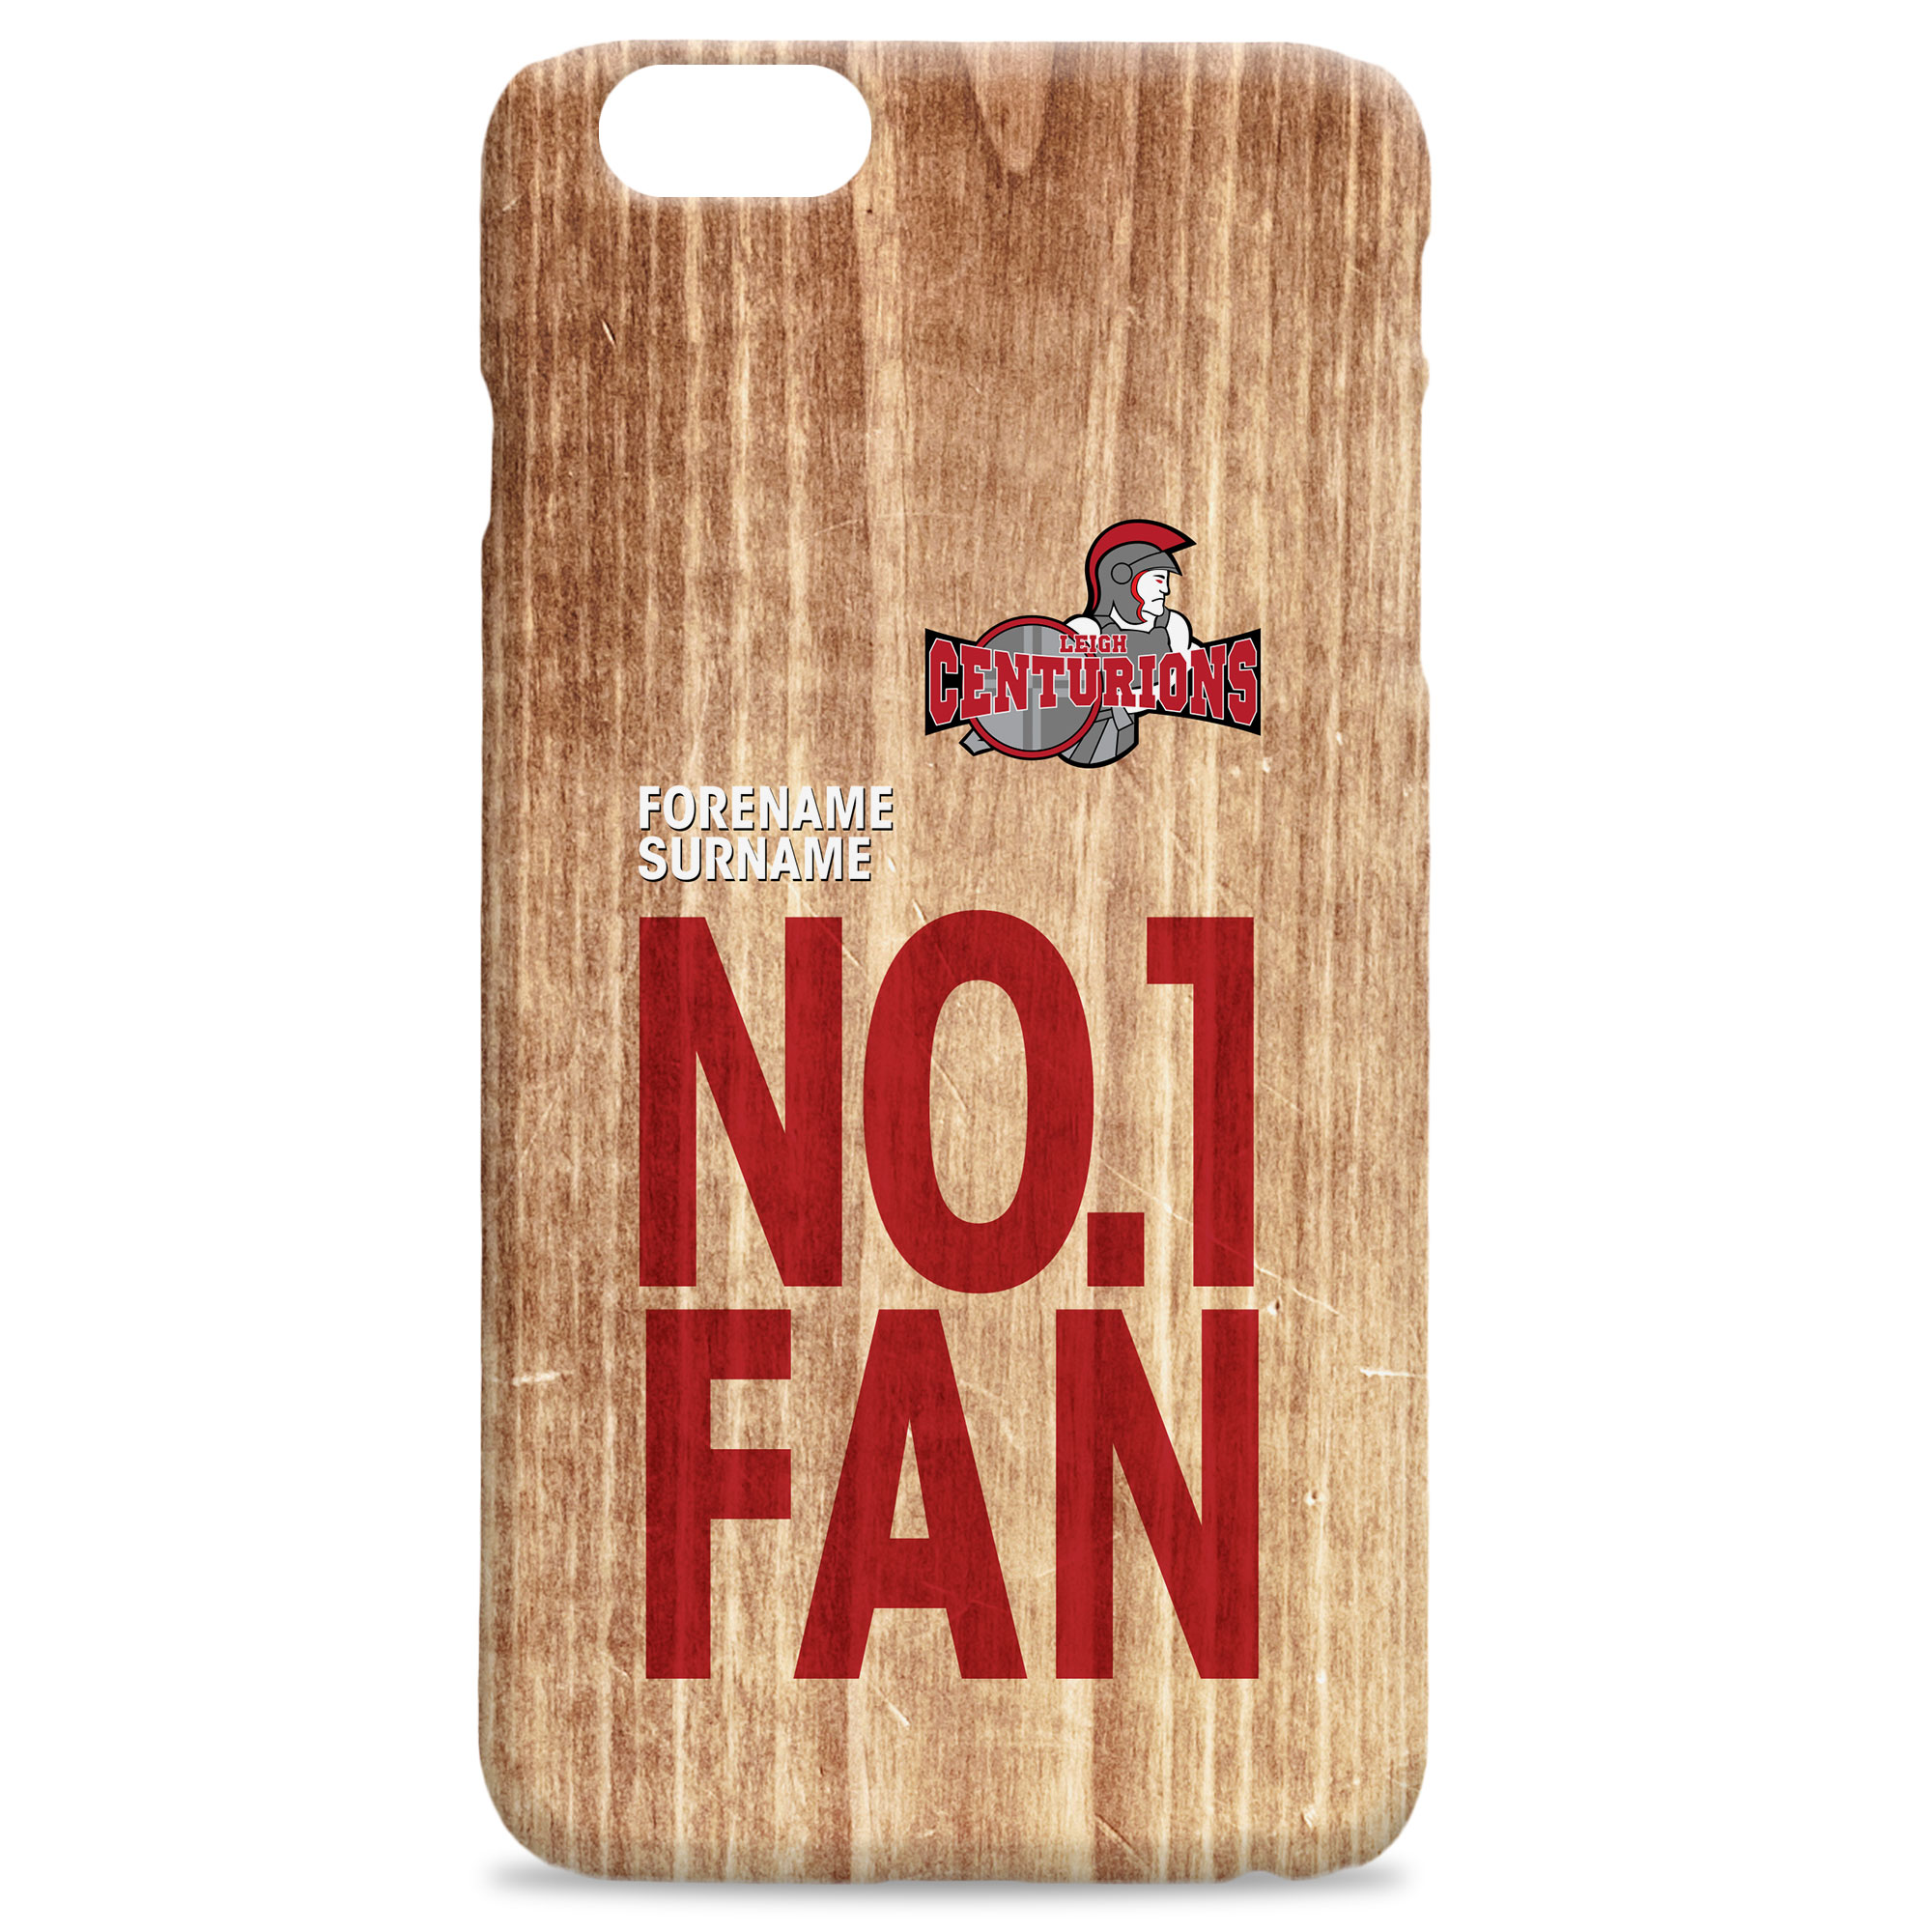 Leigh Centurions No 1 Fan Hard Back Phone Case